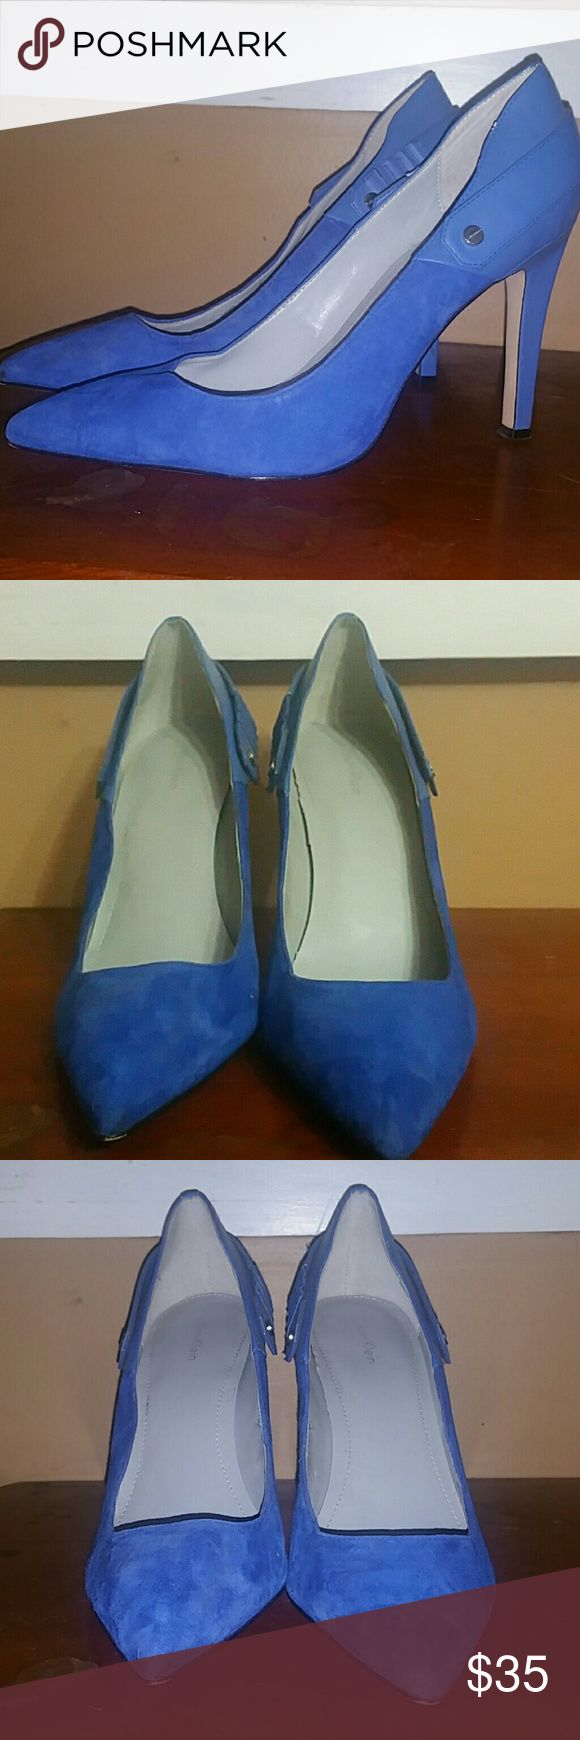 "💥REDUCED💥Calvin Klein Blues Suede Pumps Blue Suede Calvin Klein Pumps. True to size. 4"" Heels. Perfect heels to wear to the office or add a hint of color to your outfit of the day. Chic and classic pumps. Calvin Klein Shoes Heels"